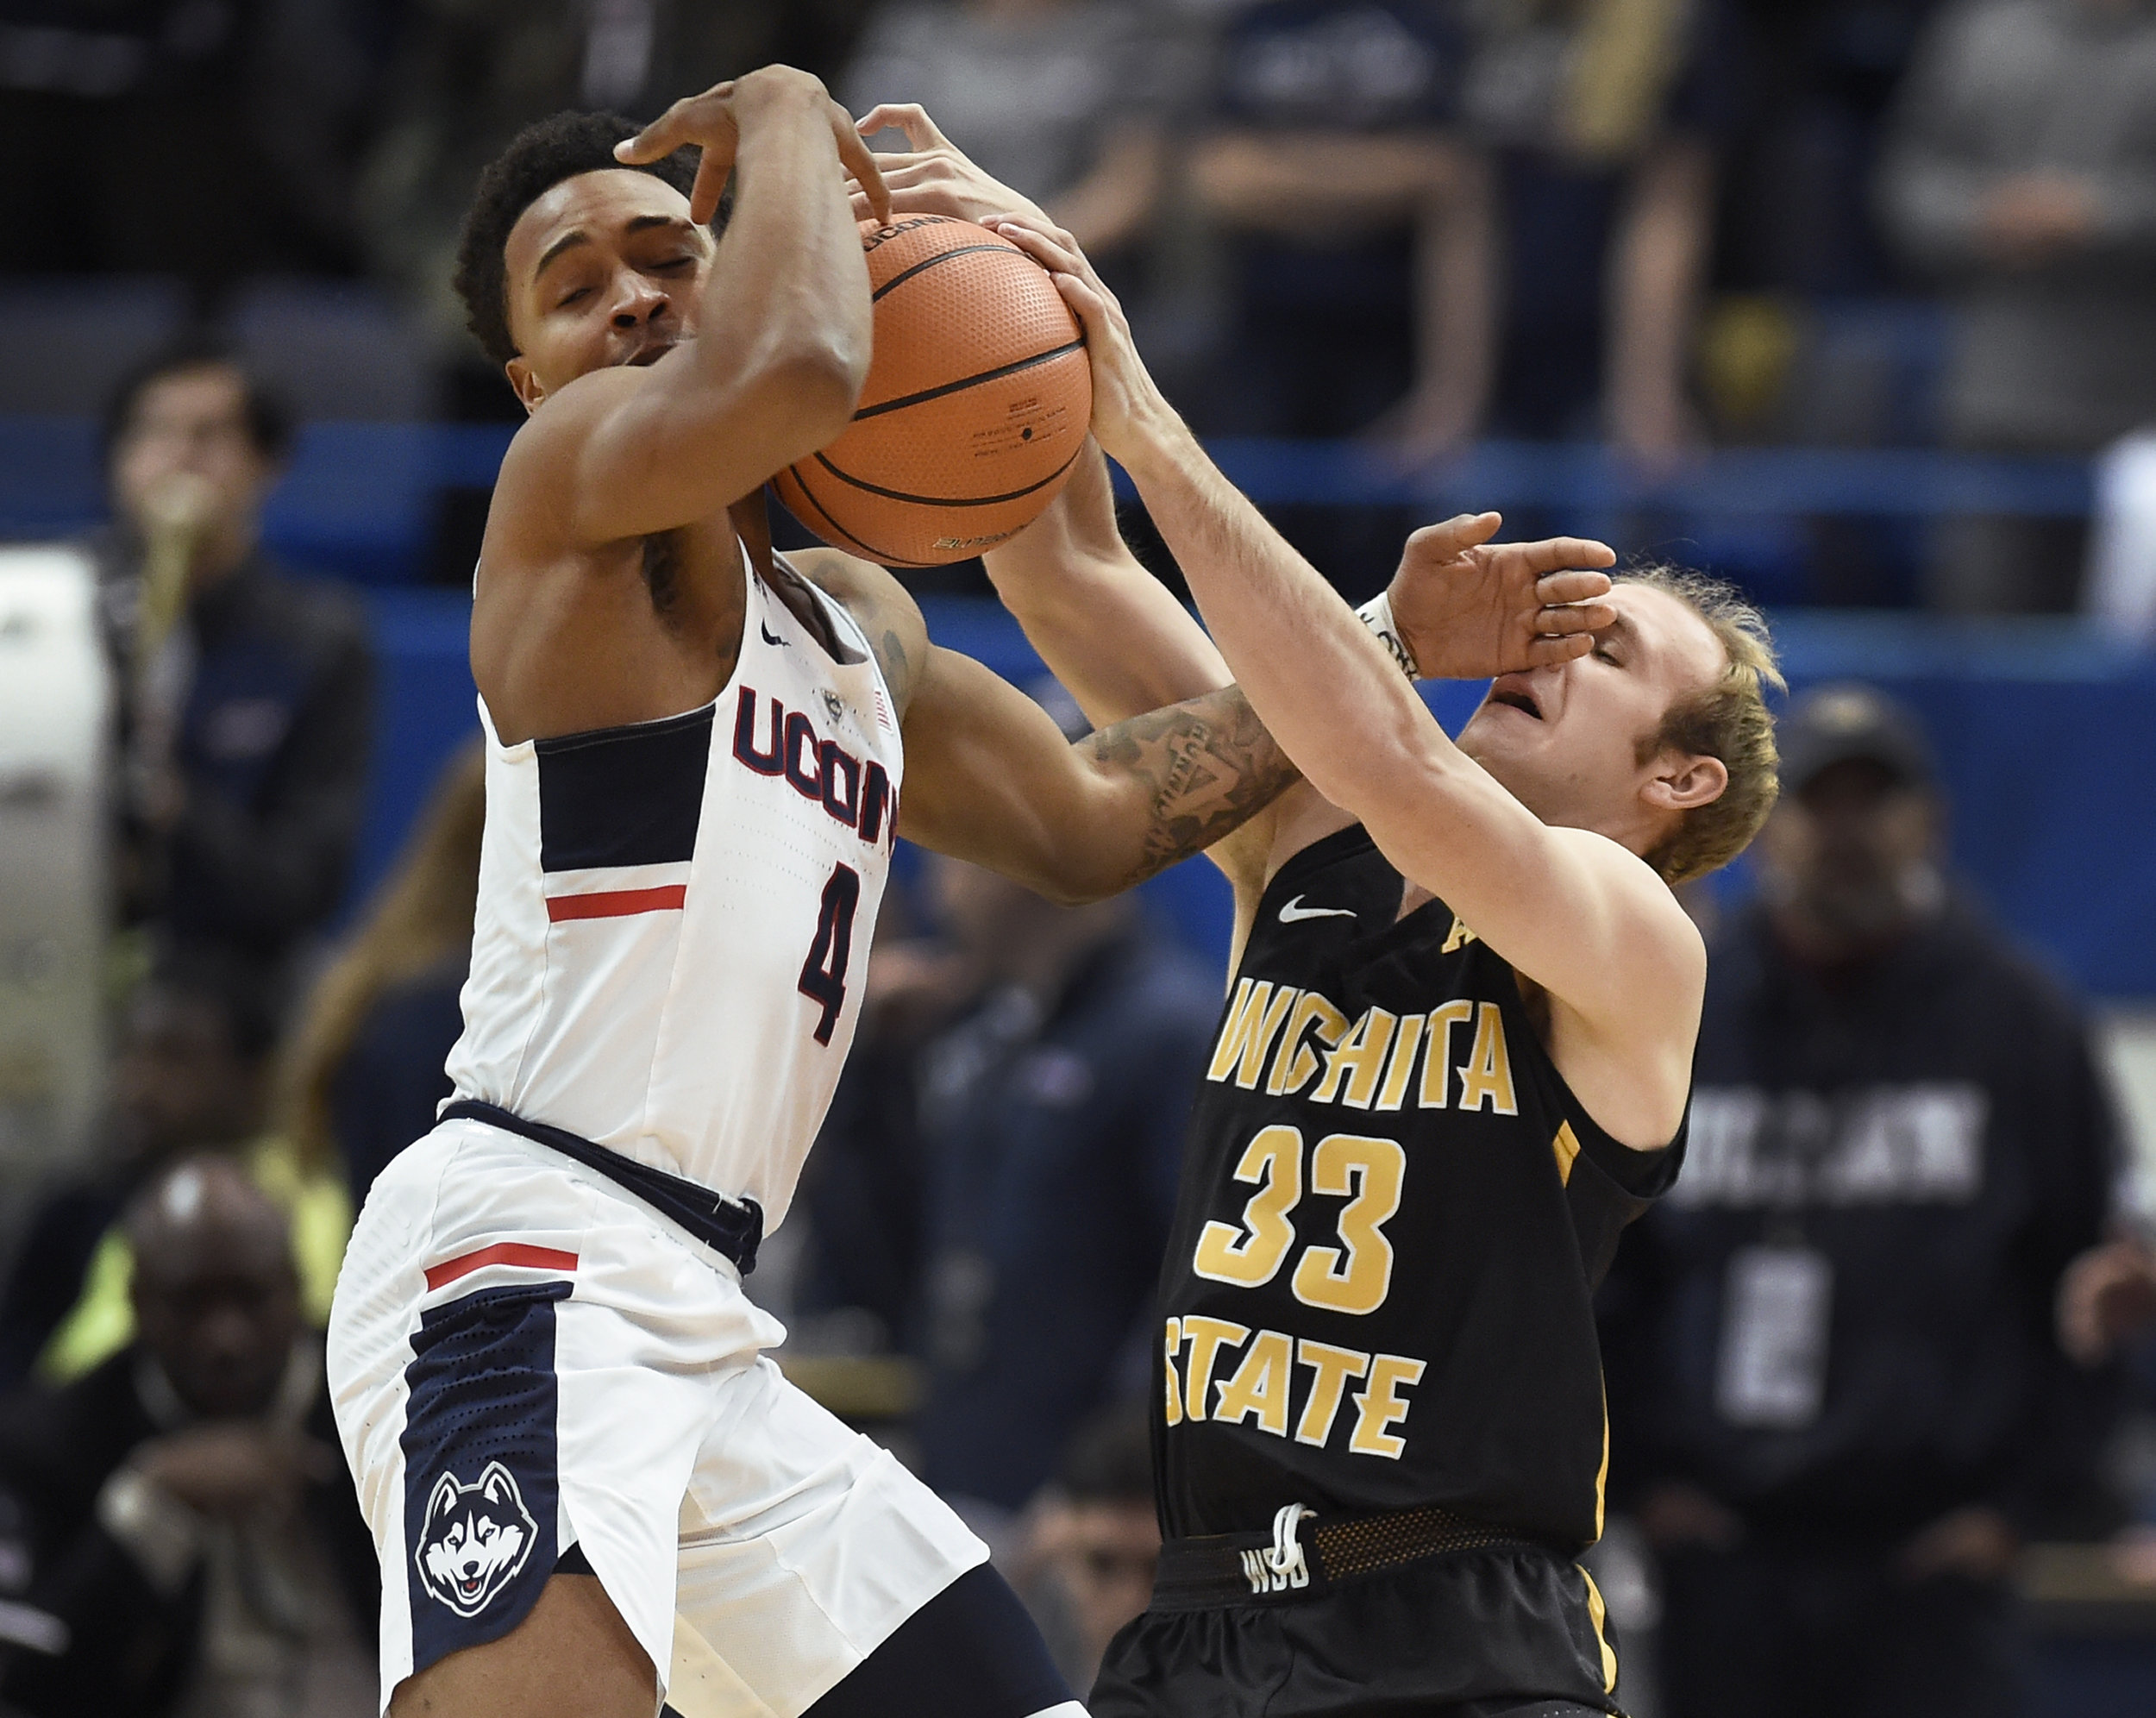 Wichita State's Conner Frankamp, right, pressures Connecticut's Jalen Adams during the first half of an NCAA college basketball game, Saturday, Dec. 30, 2017, in Hartford, Conn. (AP Photo/Jessica Hill)